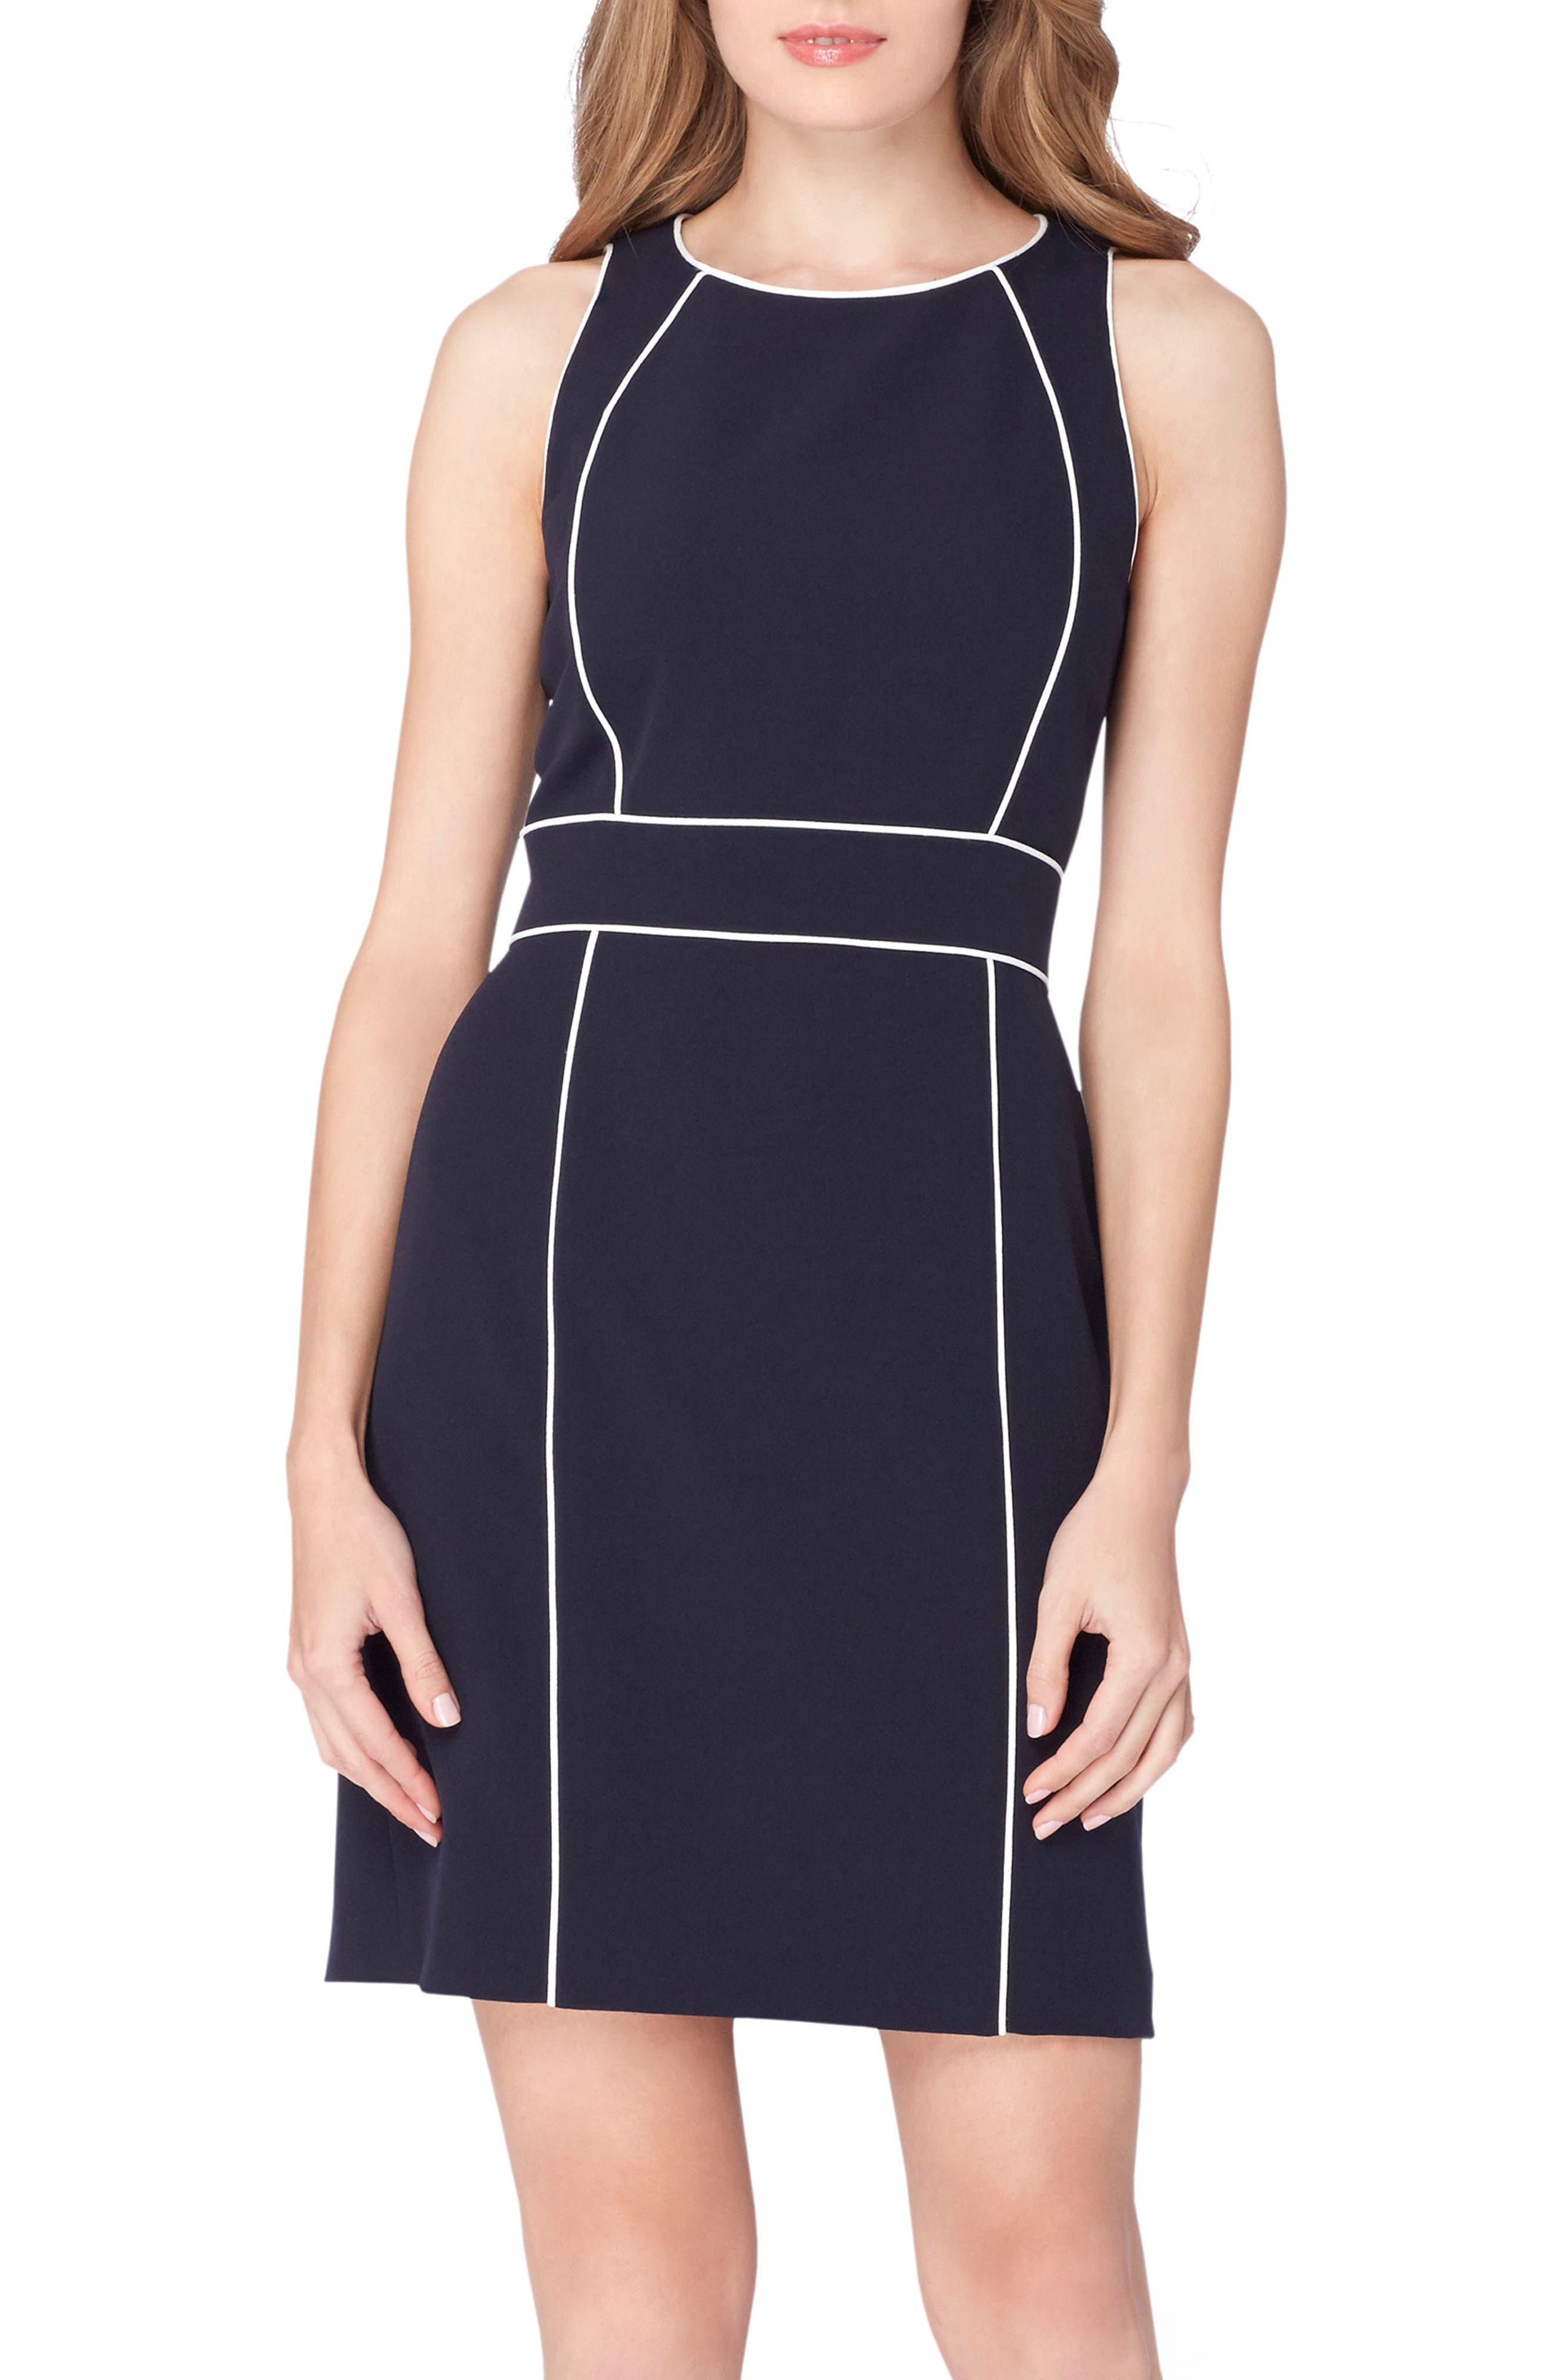 Alternate Image 3  - Tahari Colorblock Sheath Dress (Regular & Petite)